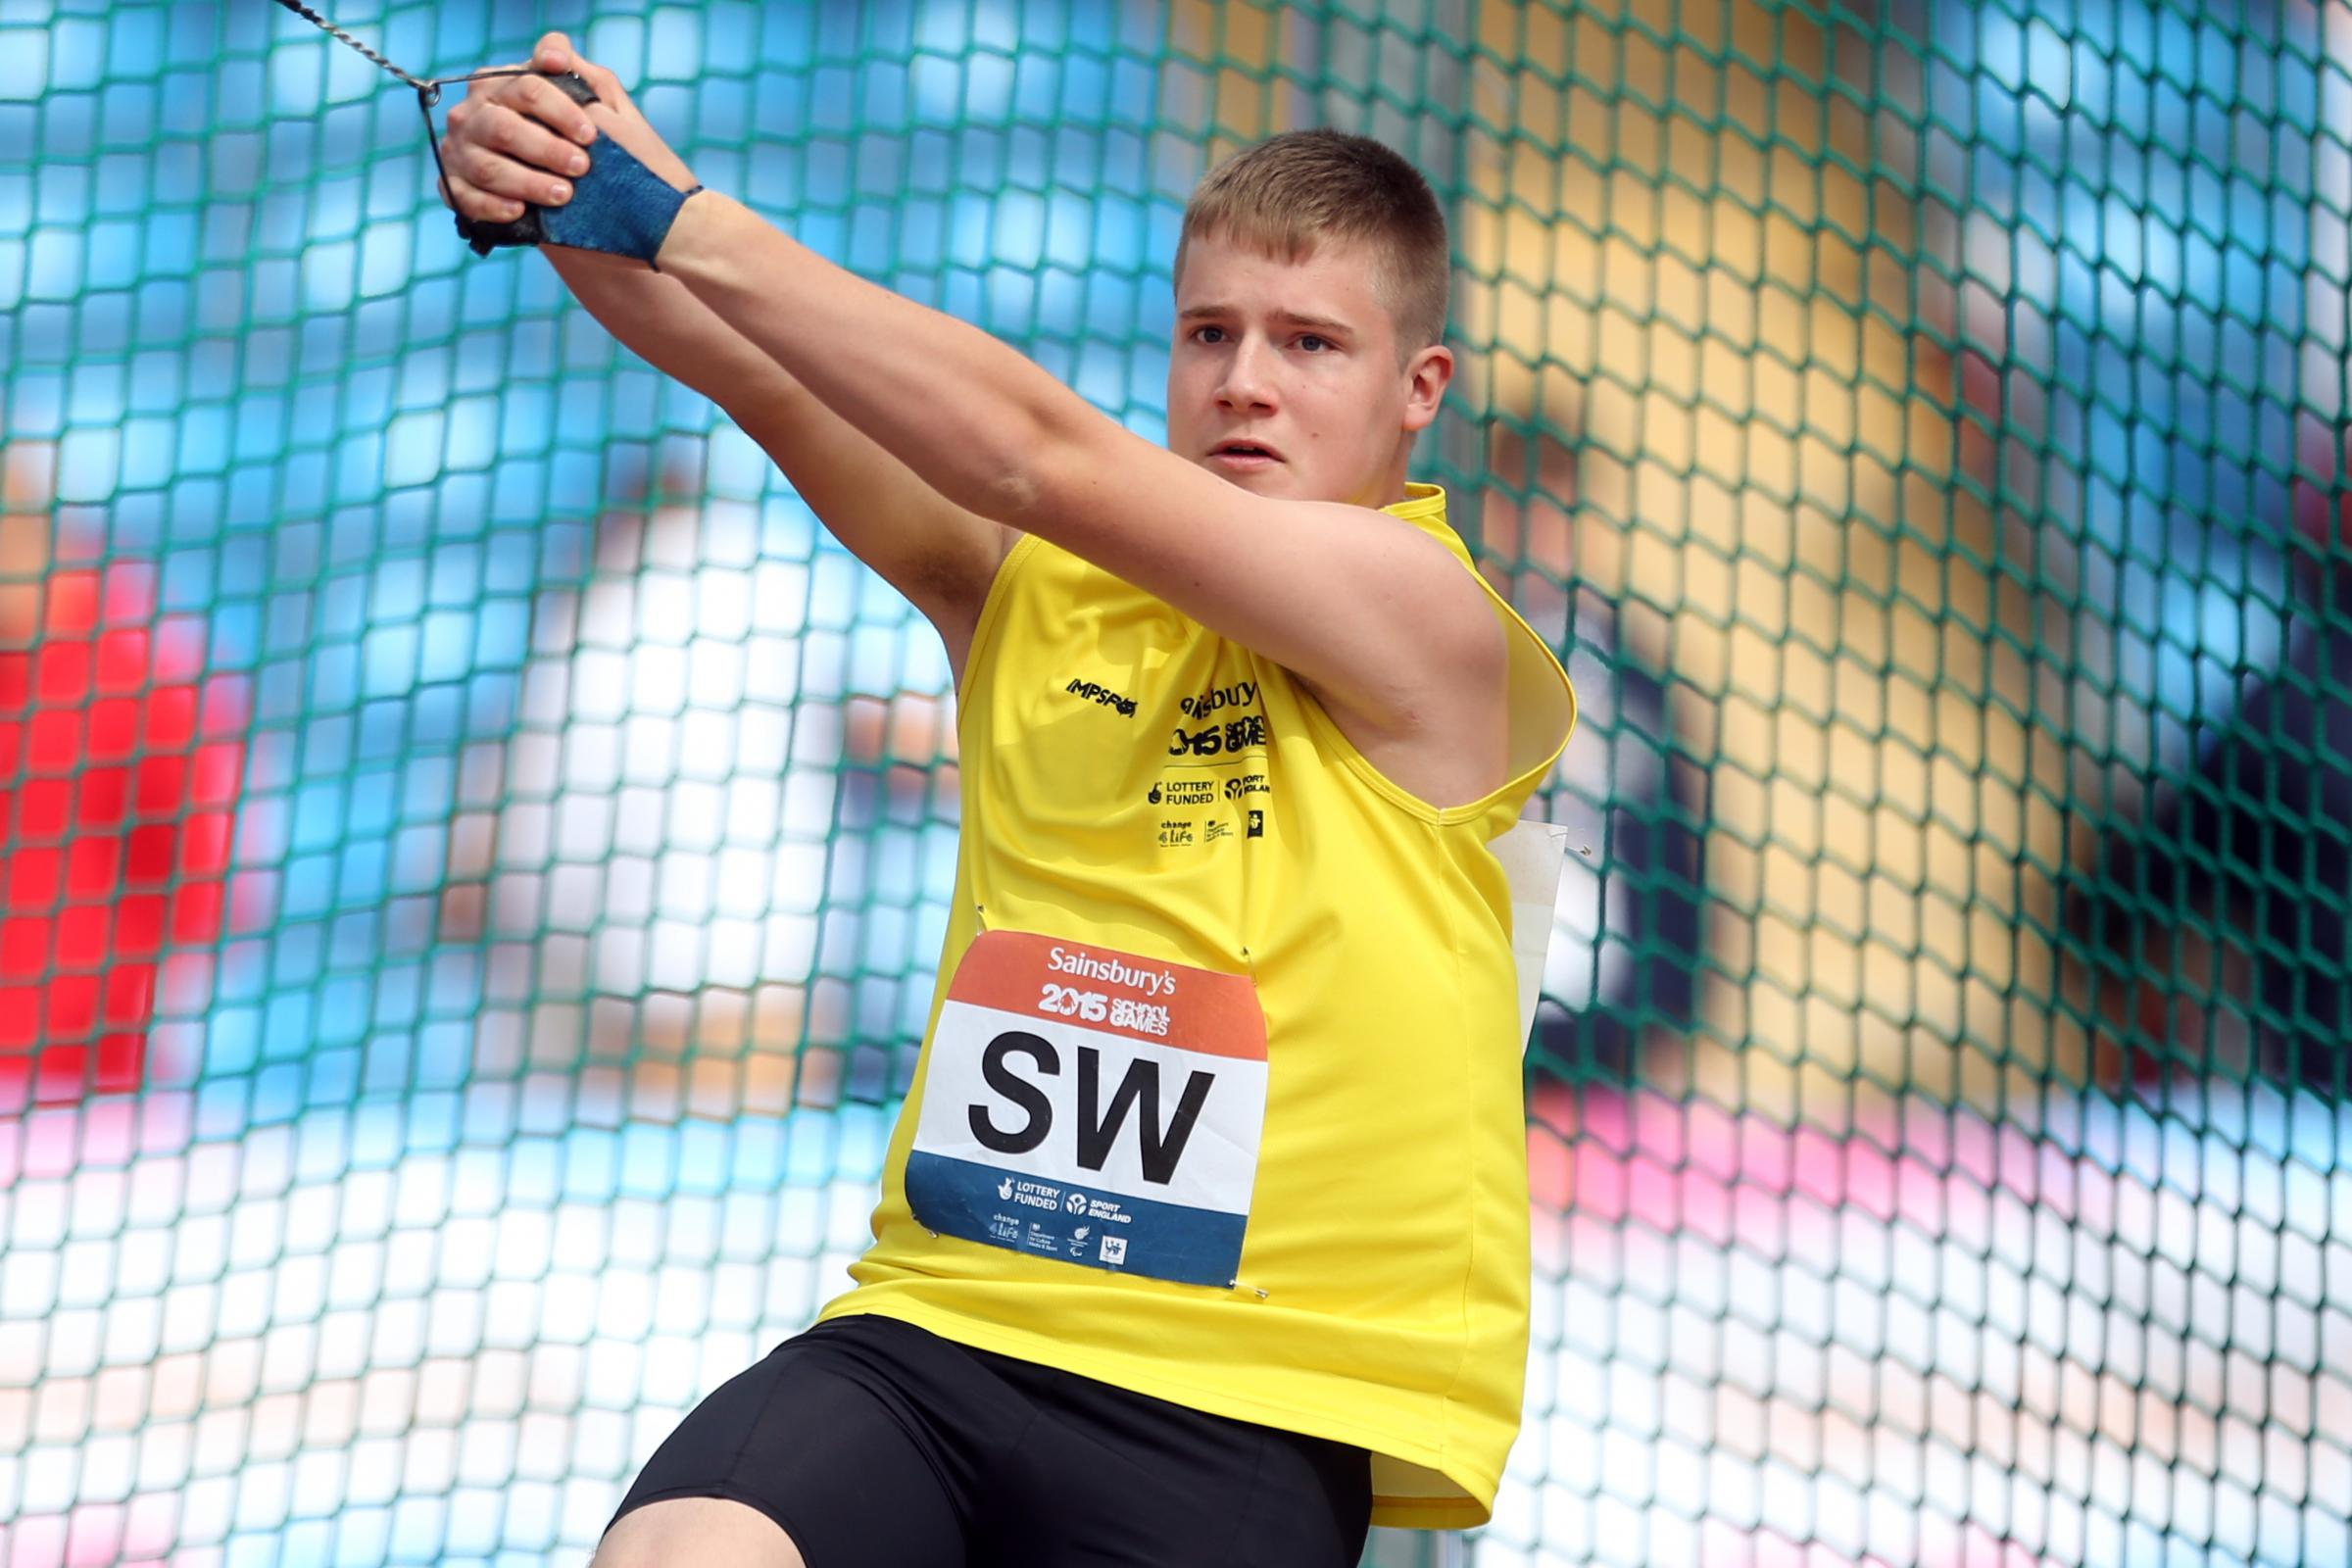 Jake Norris will represent Great Britain in the hammer at the Manchester International.